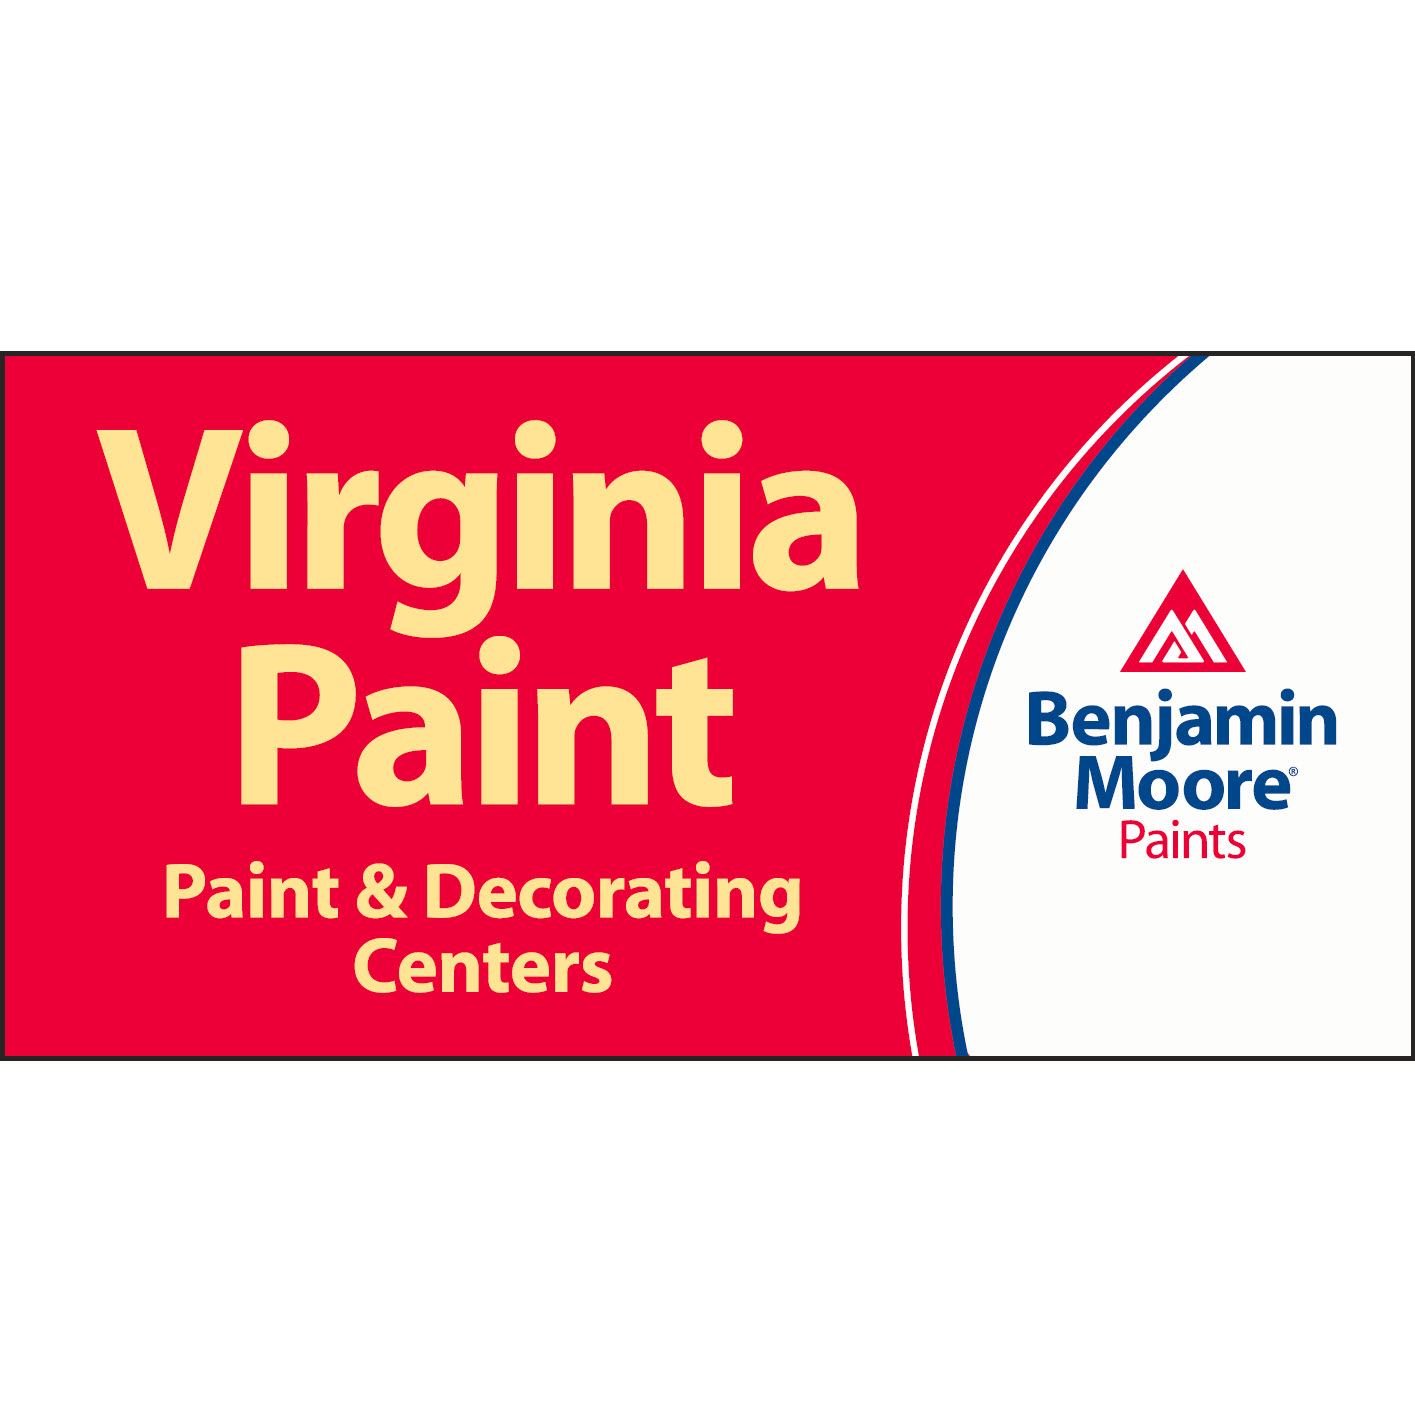 virginia paint company in midlothian va 23112